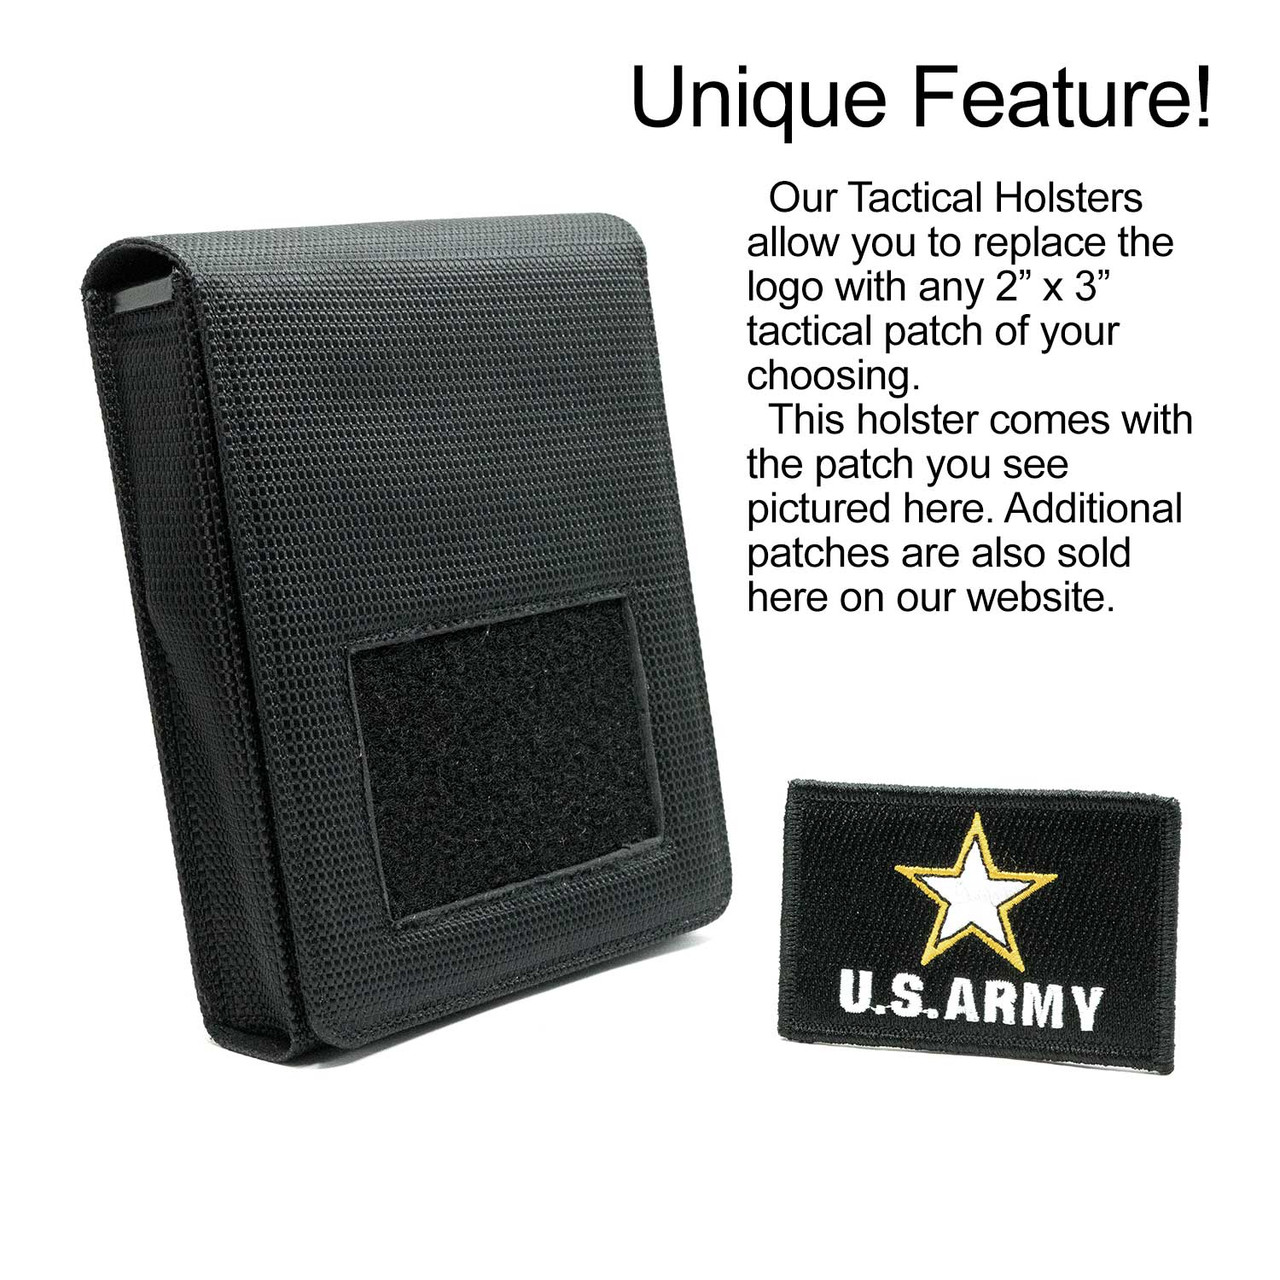 Bersa TPR9c Army Tactical Patch Holster